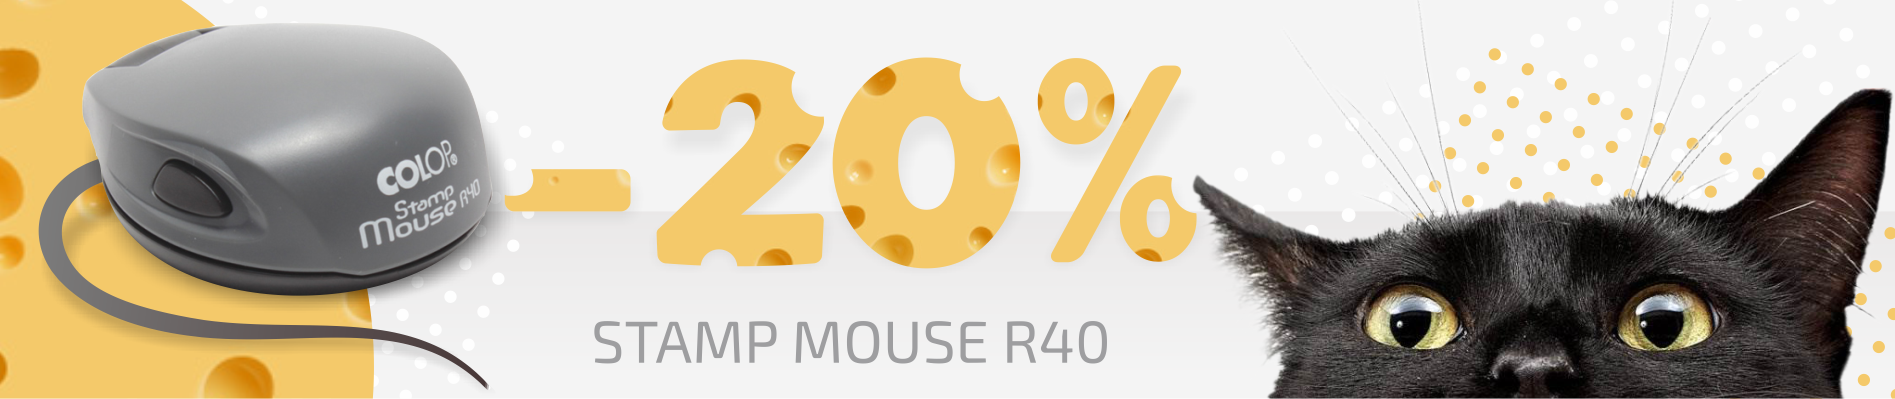 Colop Stamp Mouse 40 akcija